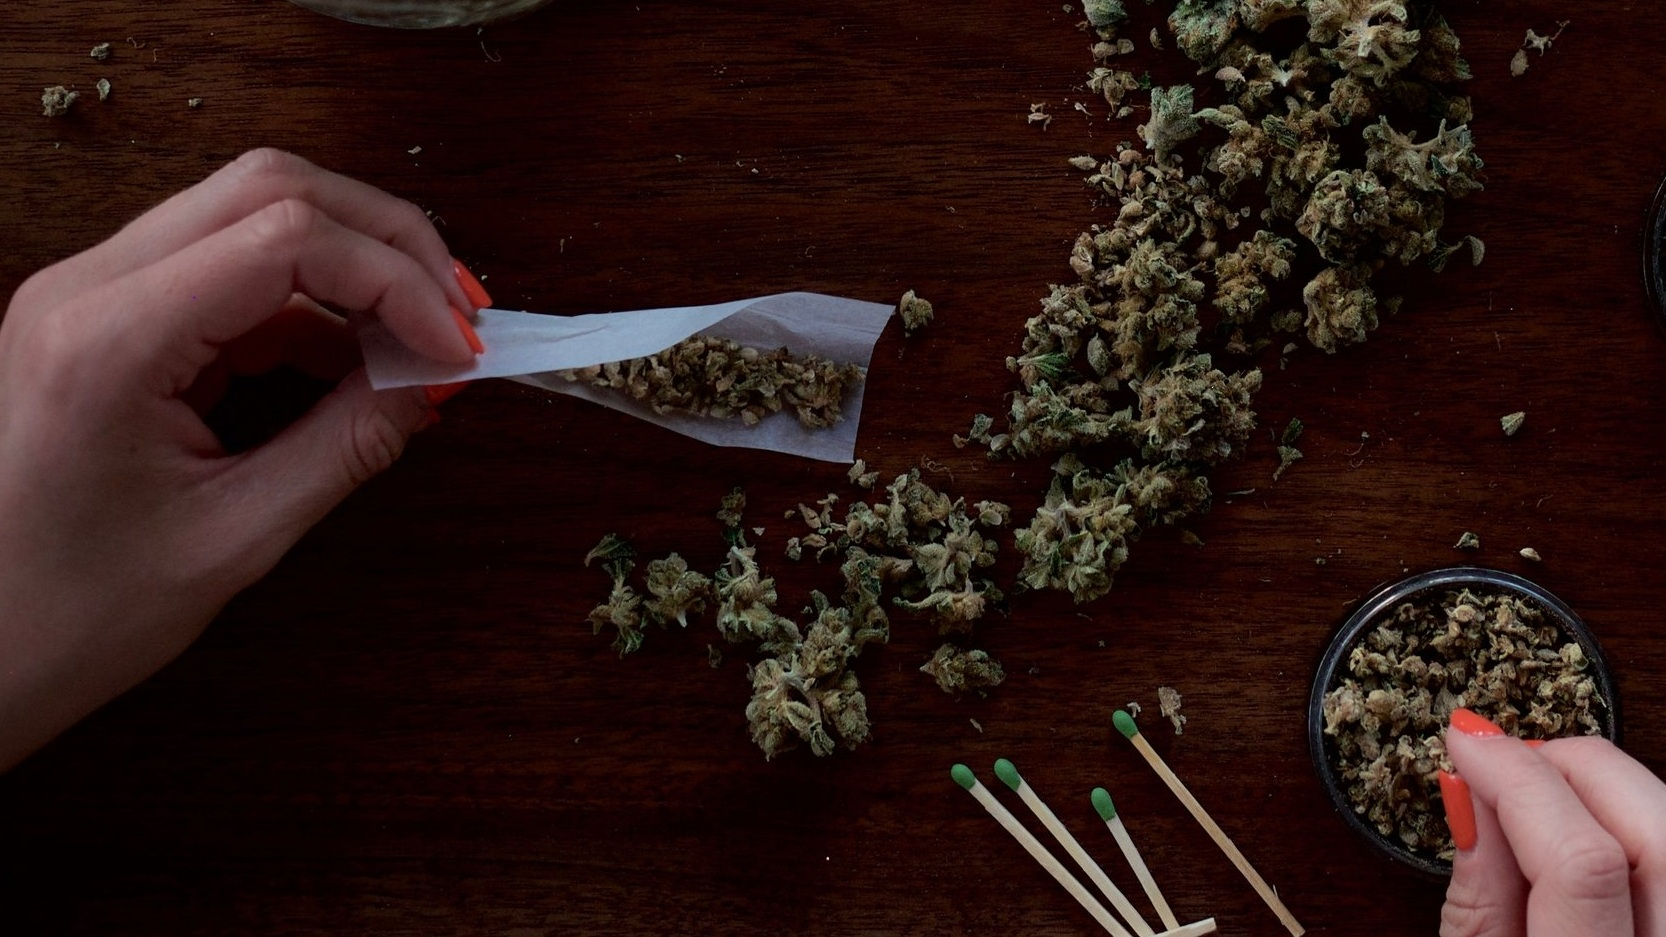 #4 Budtender - Average national salary range for qualified professionals: $13.25 per hour to $16 per hour.